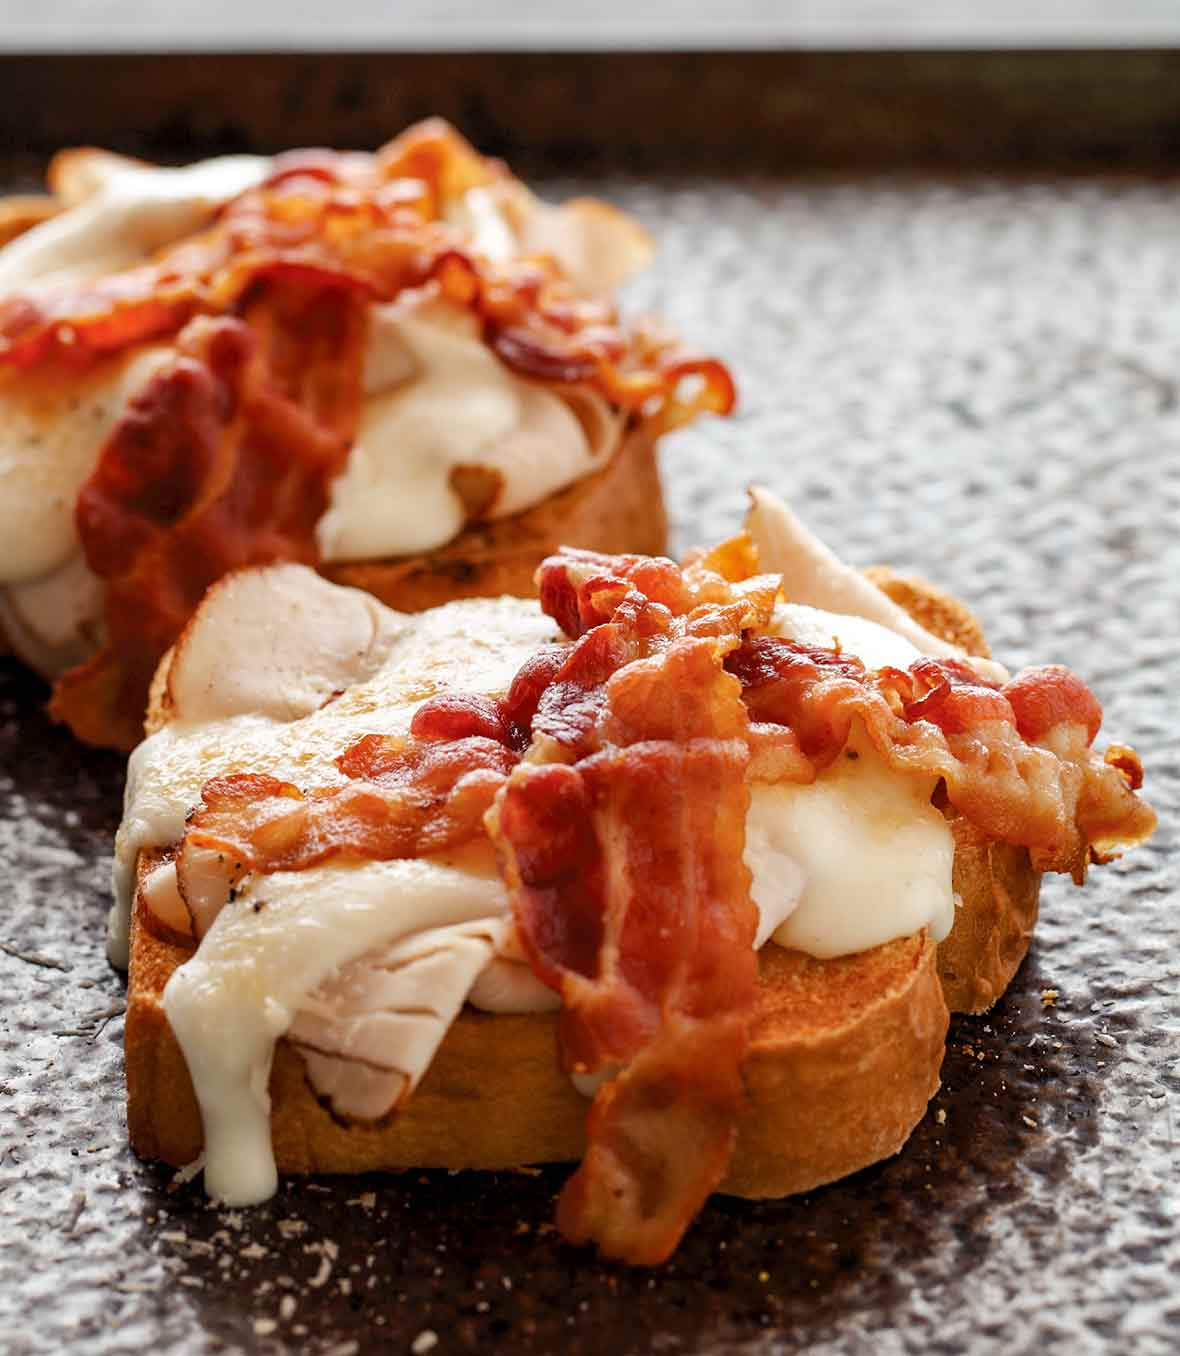 Two open-faced sandwiches topped with turkey, white sauce, and two slices of bacon